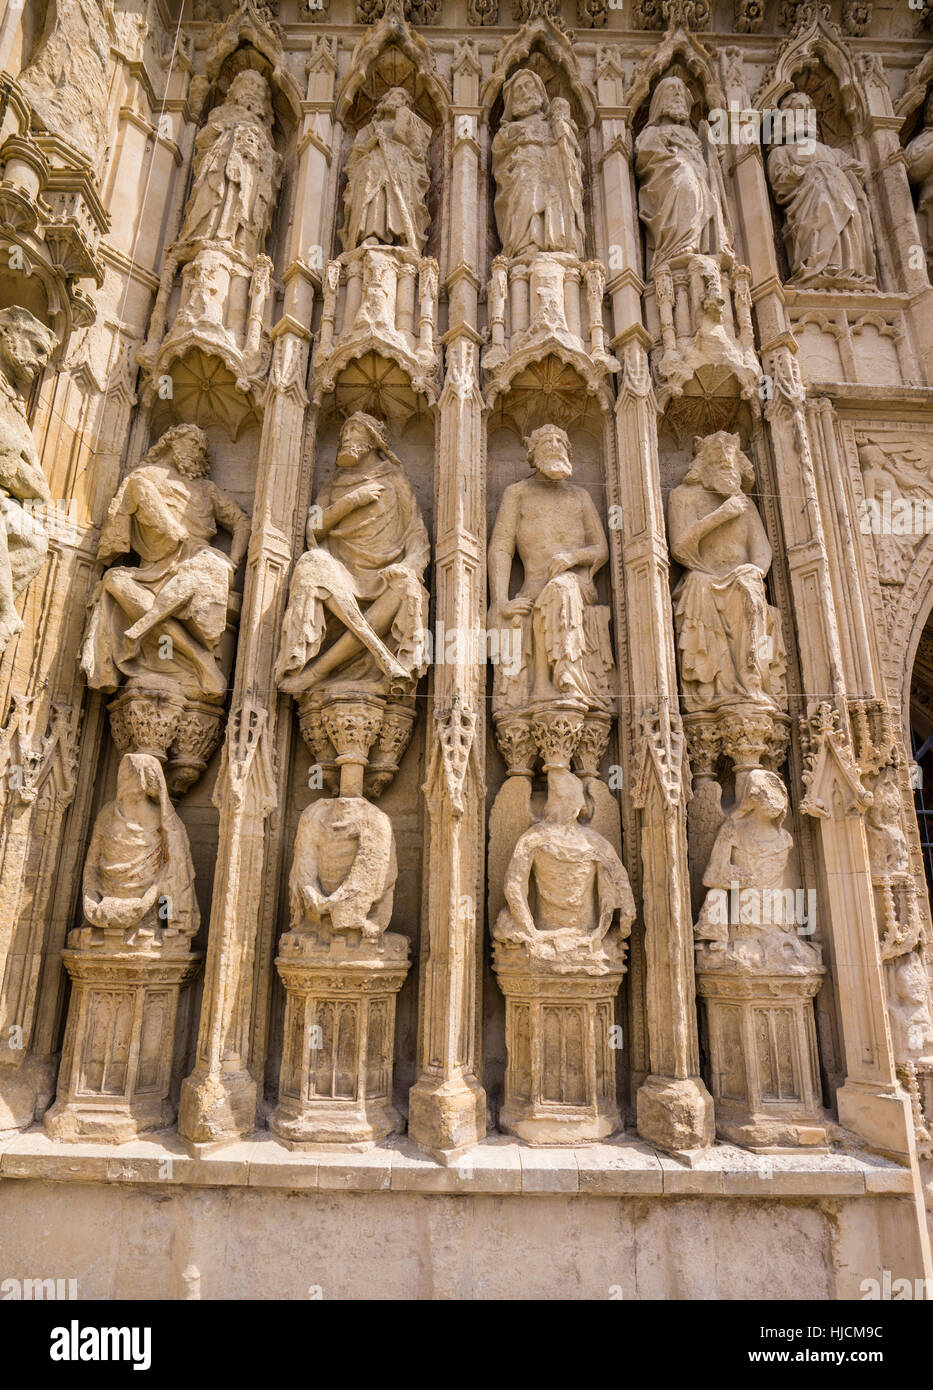 Great Britain, South West England, Devon, Exeter, Exeter Cathedral, elaborate stone carvings of angels, saints, - Stock Image